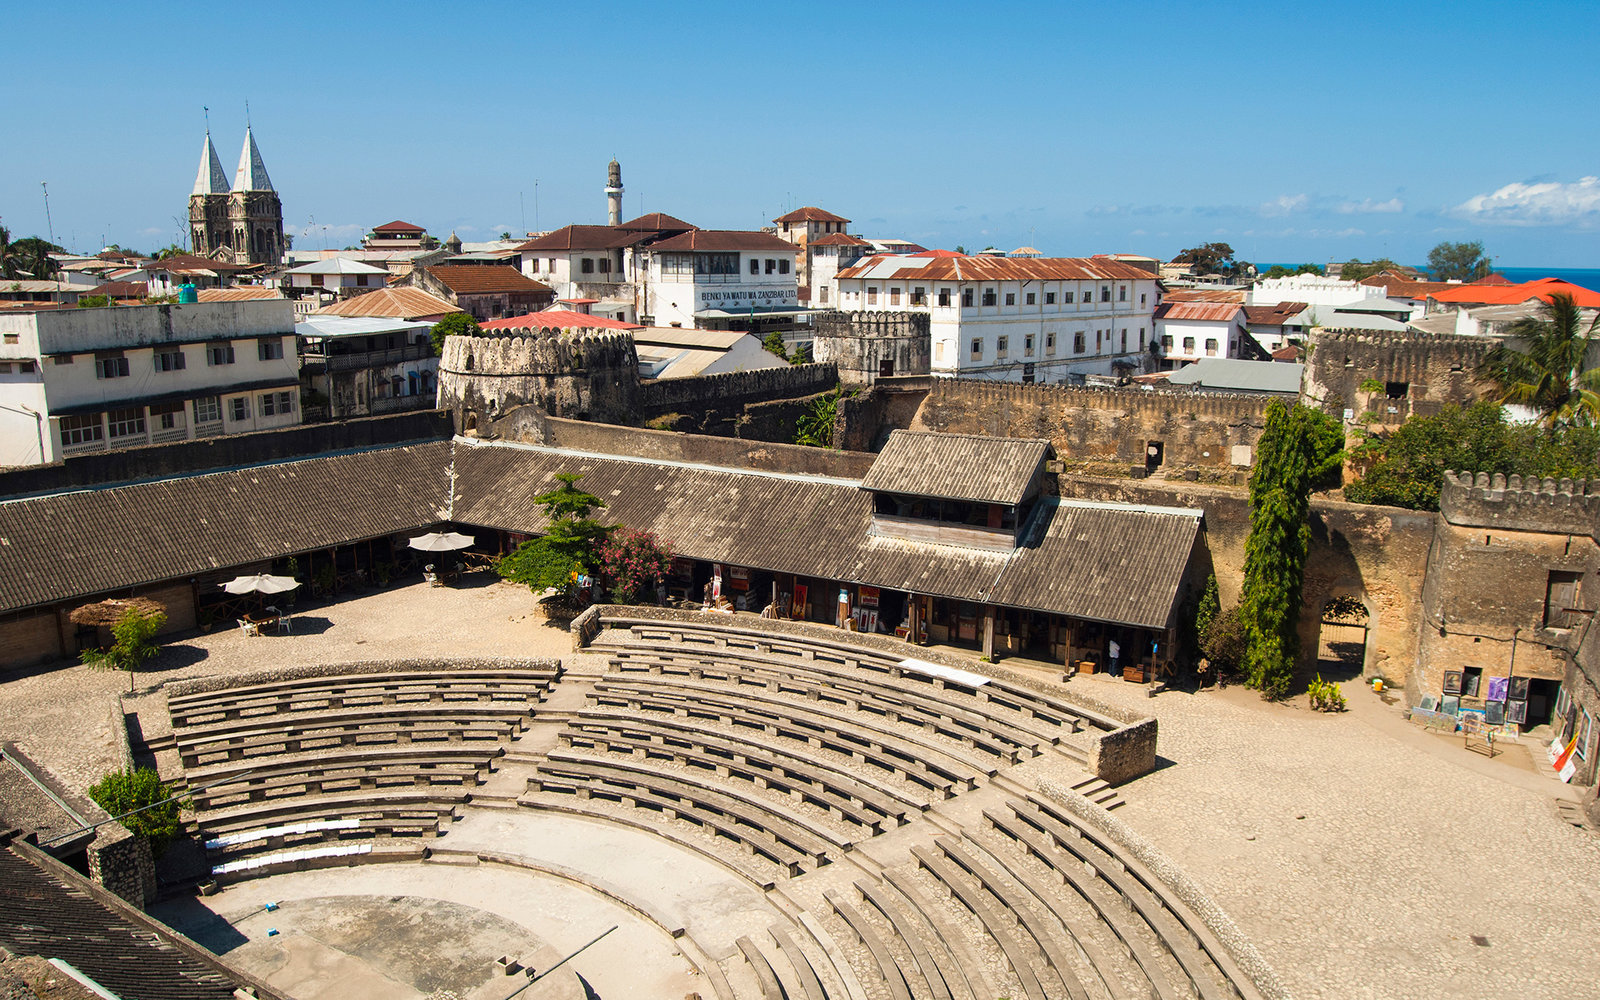 Tanzania, Zanzibar, Stone Town, The amphitheatre seen from the House of Wonders.